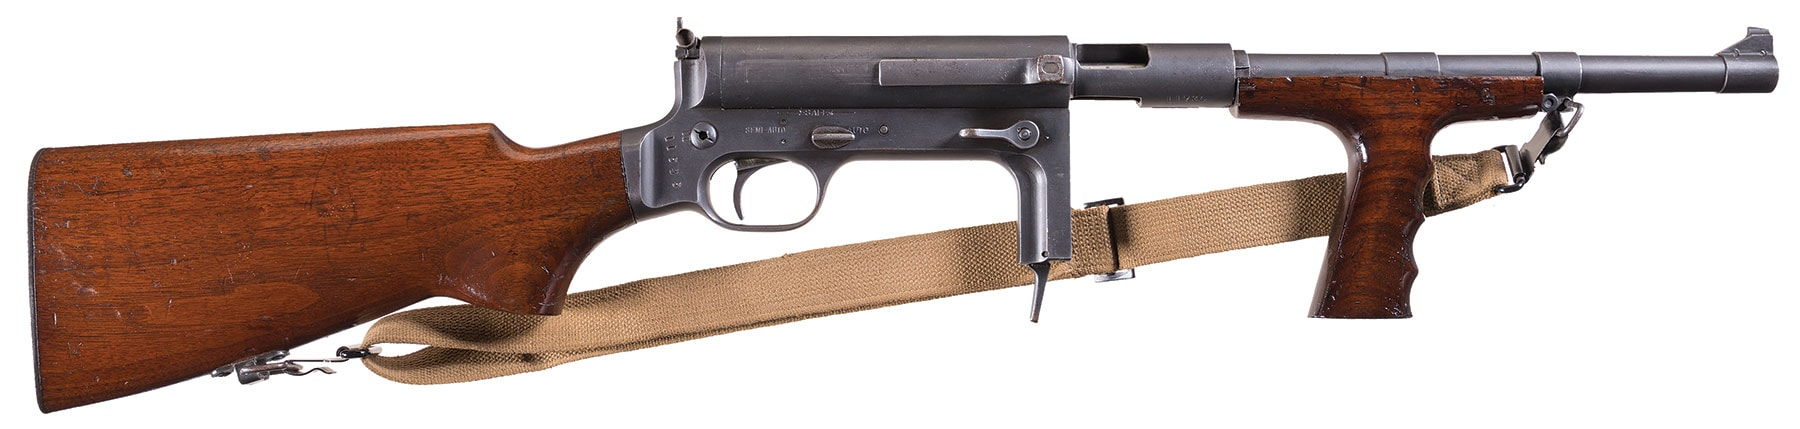 """Though it is marked """"United Defense Supply Company"""" this Model UD M.42 9mm submachine gun was actually manufactured by the Marlin Firearms company for contracts in WWII. Most went overseas and never came back, making these pretty scarce today. Estimated Price: $12,000 - $18,000"""